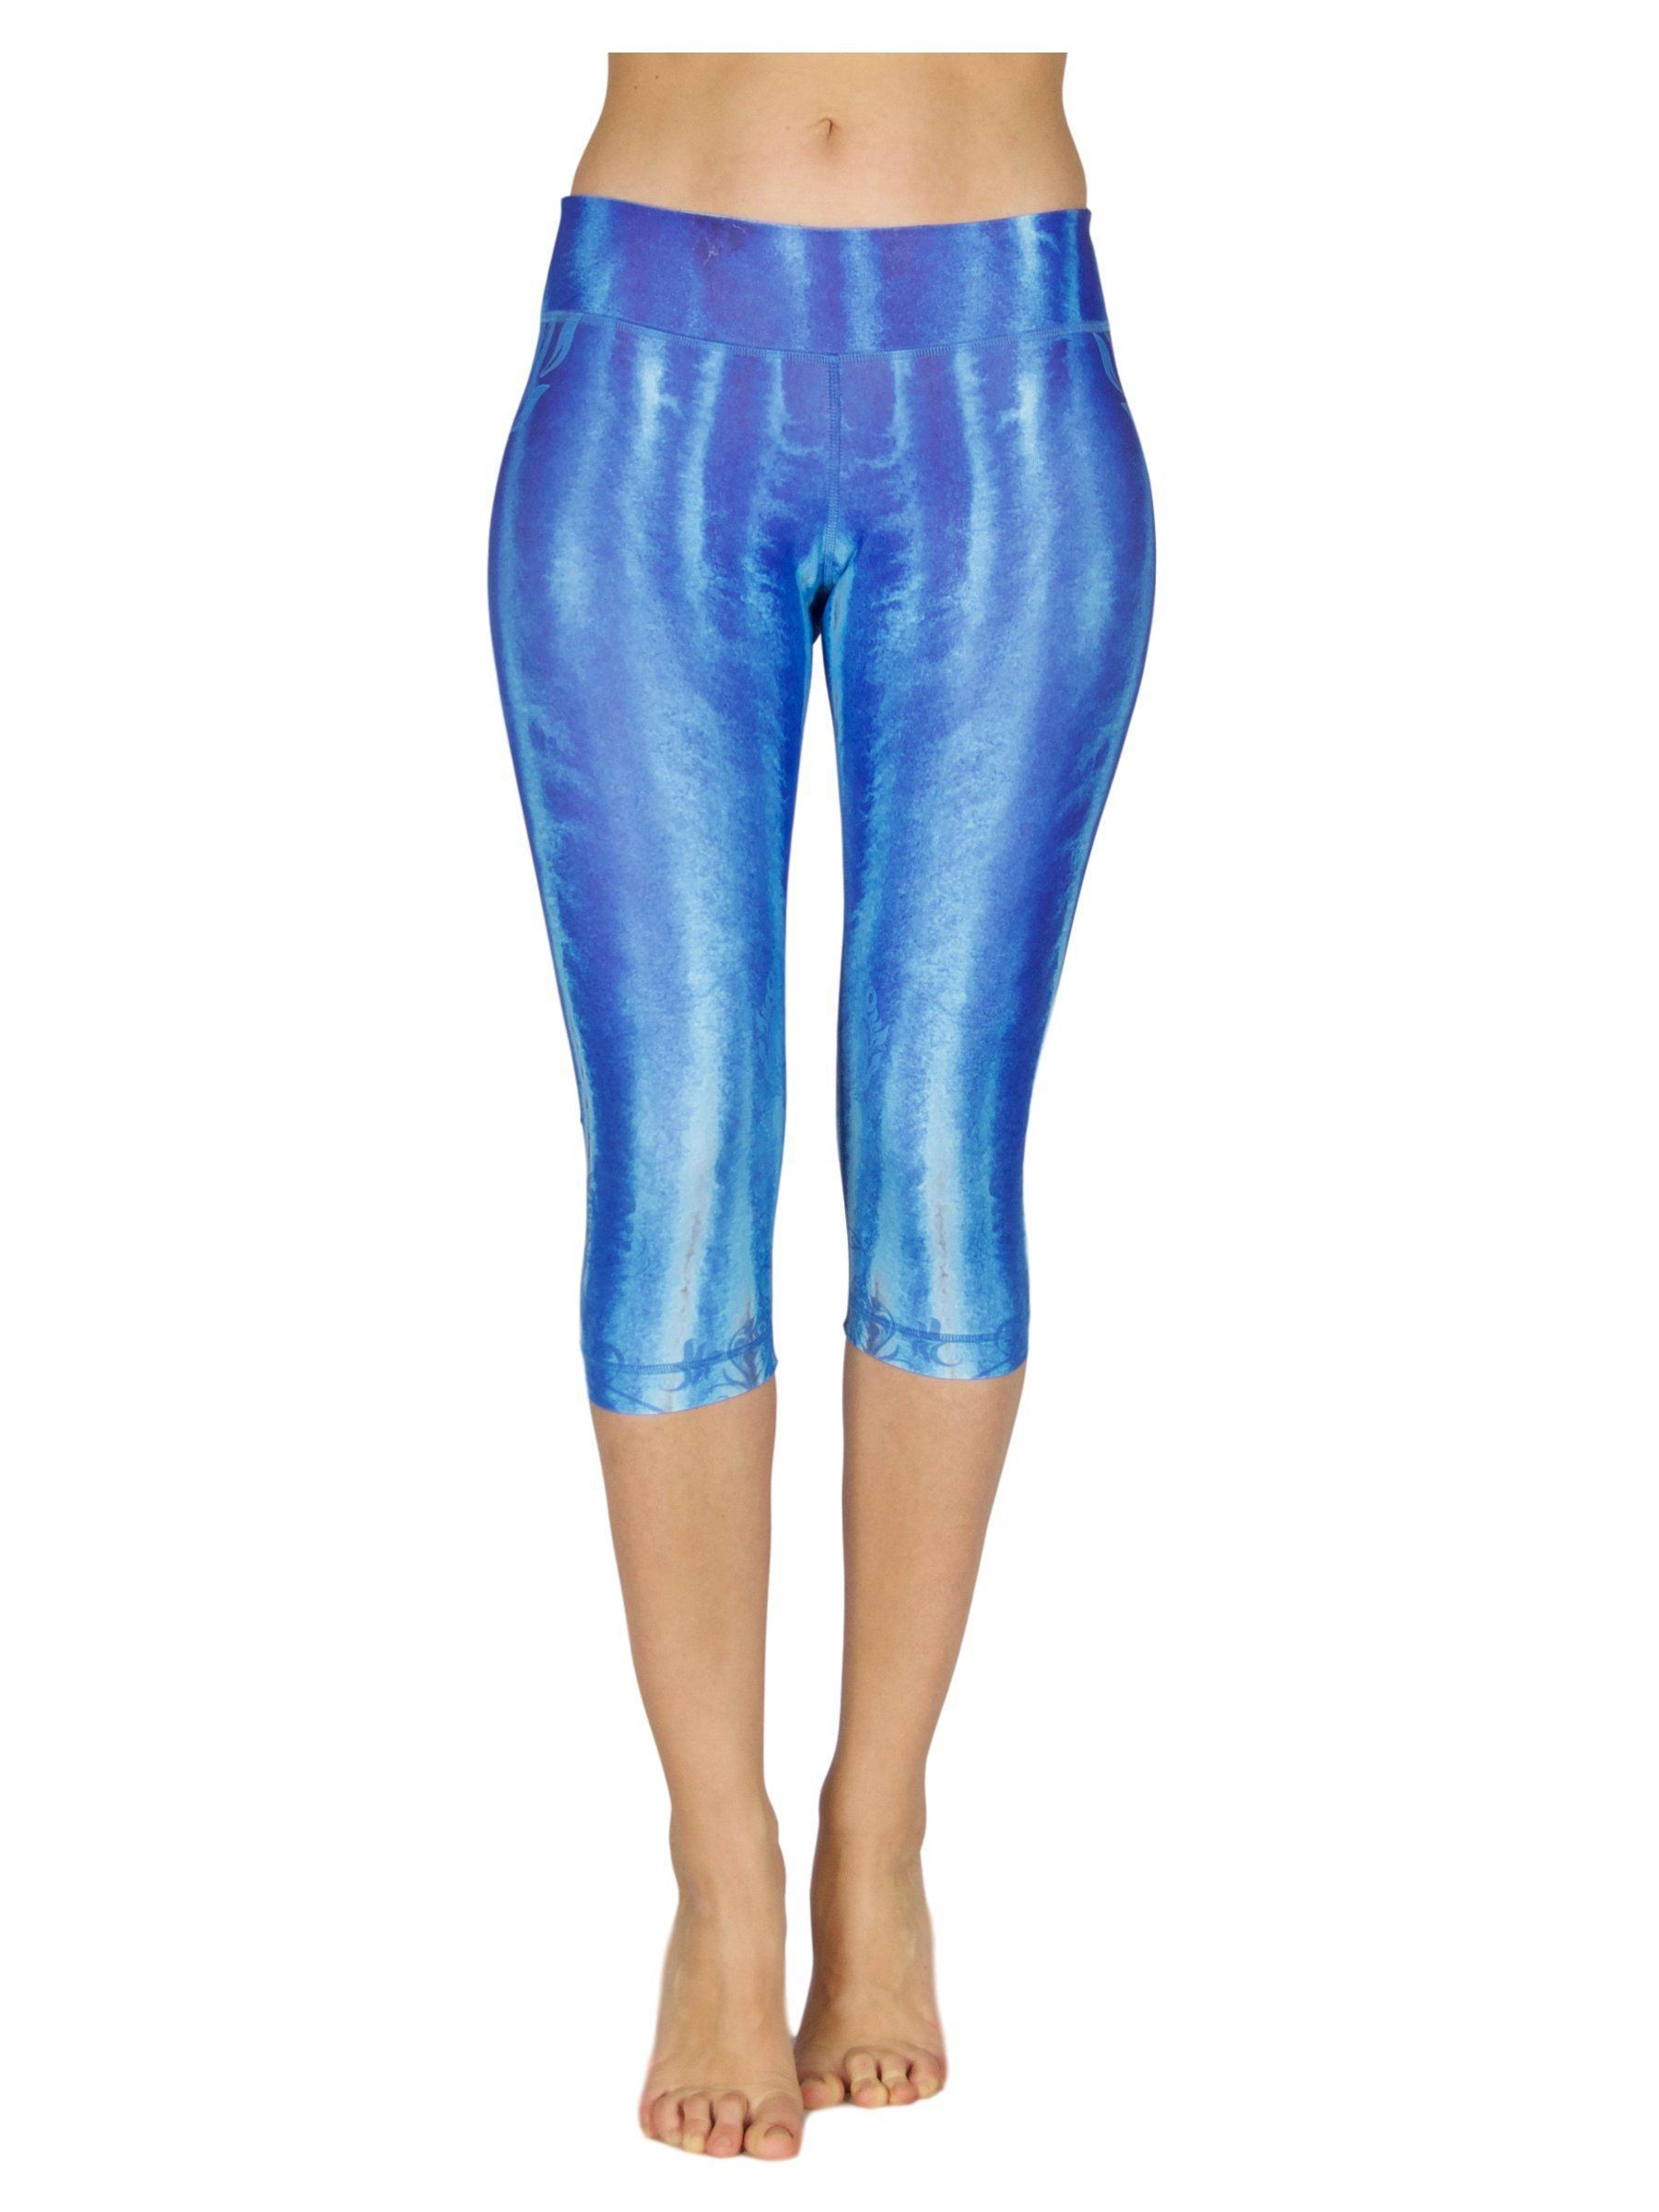 Atlantis by Niyama - High Quality, , Yoga Legging for Movement Artists.